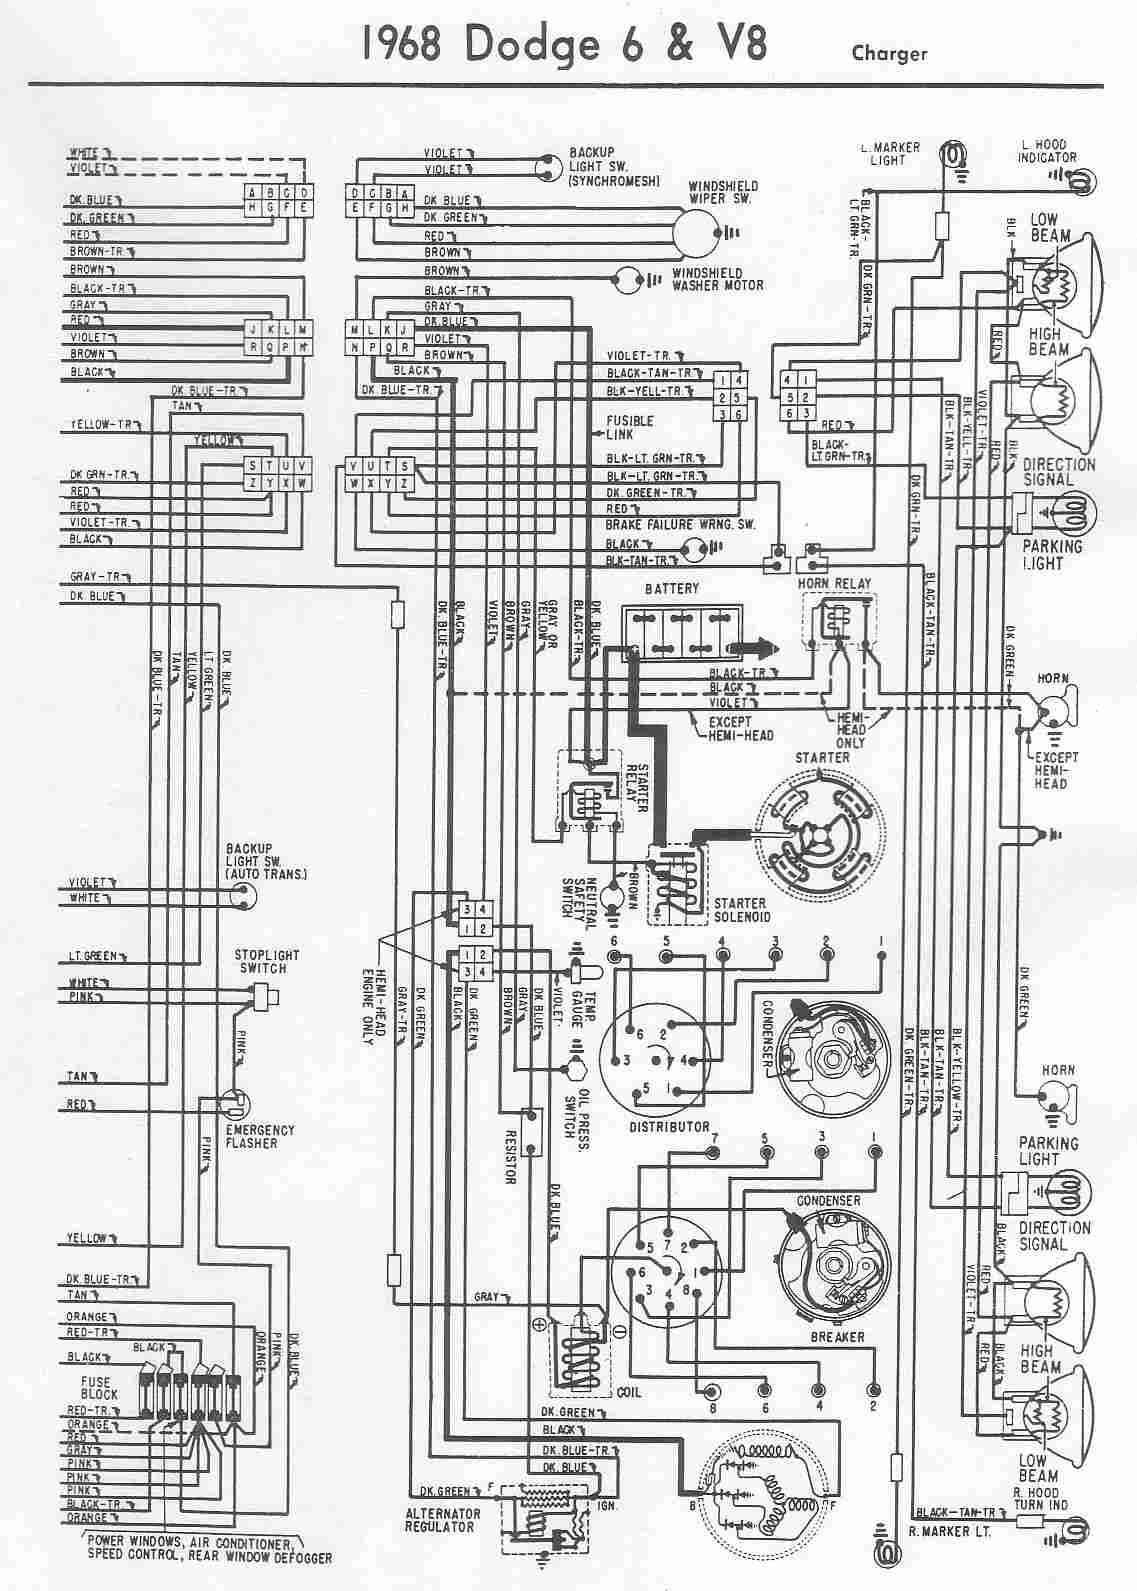 2010 sprinter exhaust system diagram, 2010 sprinter belt diagram, 2010 sprinter fuse diagram, on 2010 sprinter starter wiring diagram